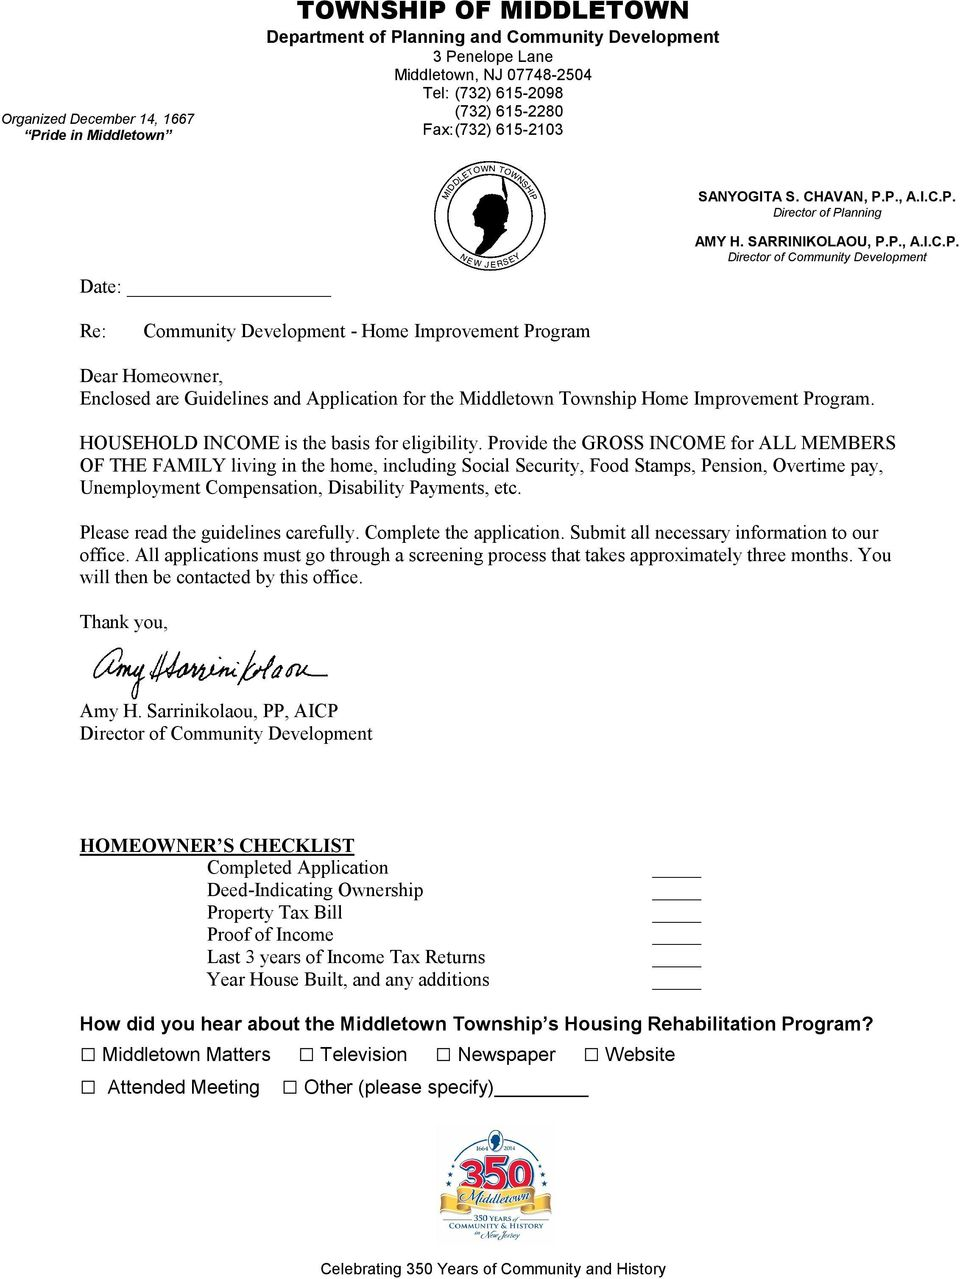 P., A.I.C.P. Director of Planning Date: _ AMY H. SARRINIKOLAOU, P.P., A.I.C.P. Director of Community Development Re: Community Development - Home Improvement Program Dear Homeowner, Enclosed are Guidelines and Application for the Middletown Township Home Improvement Program.